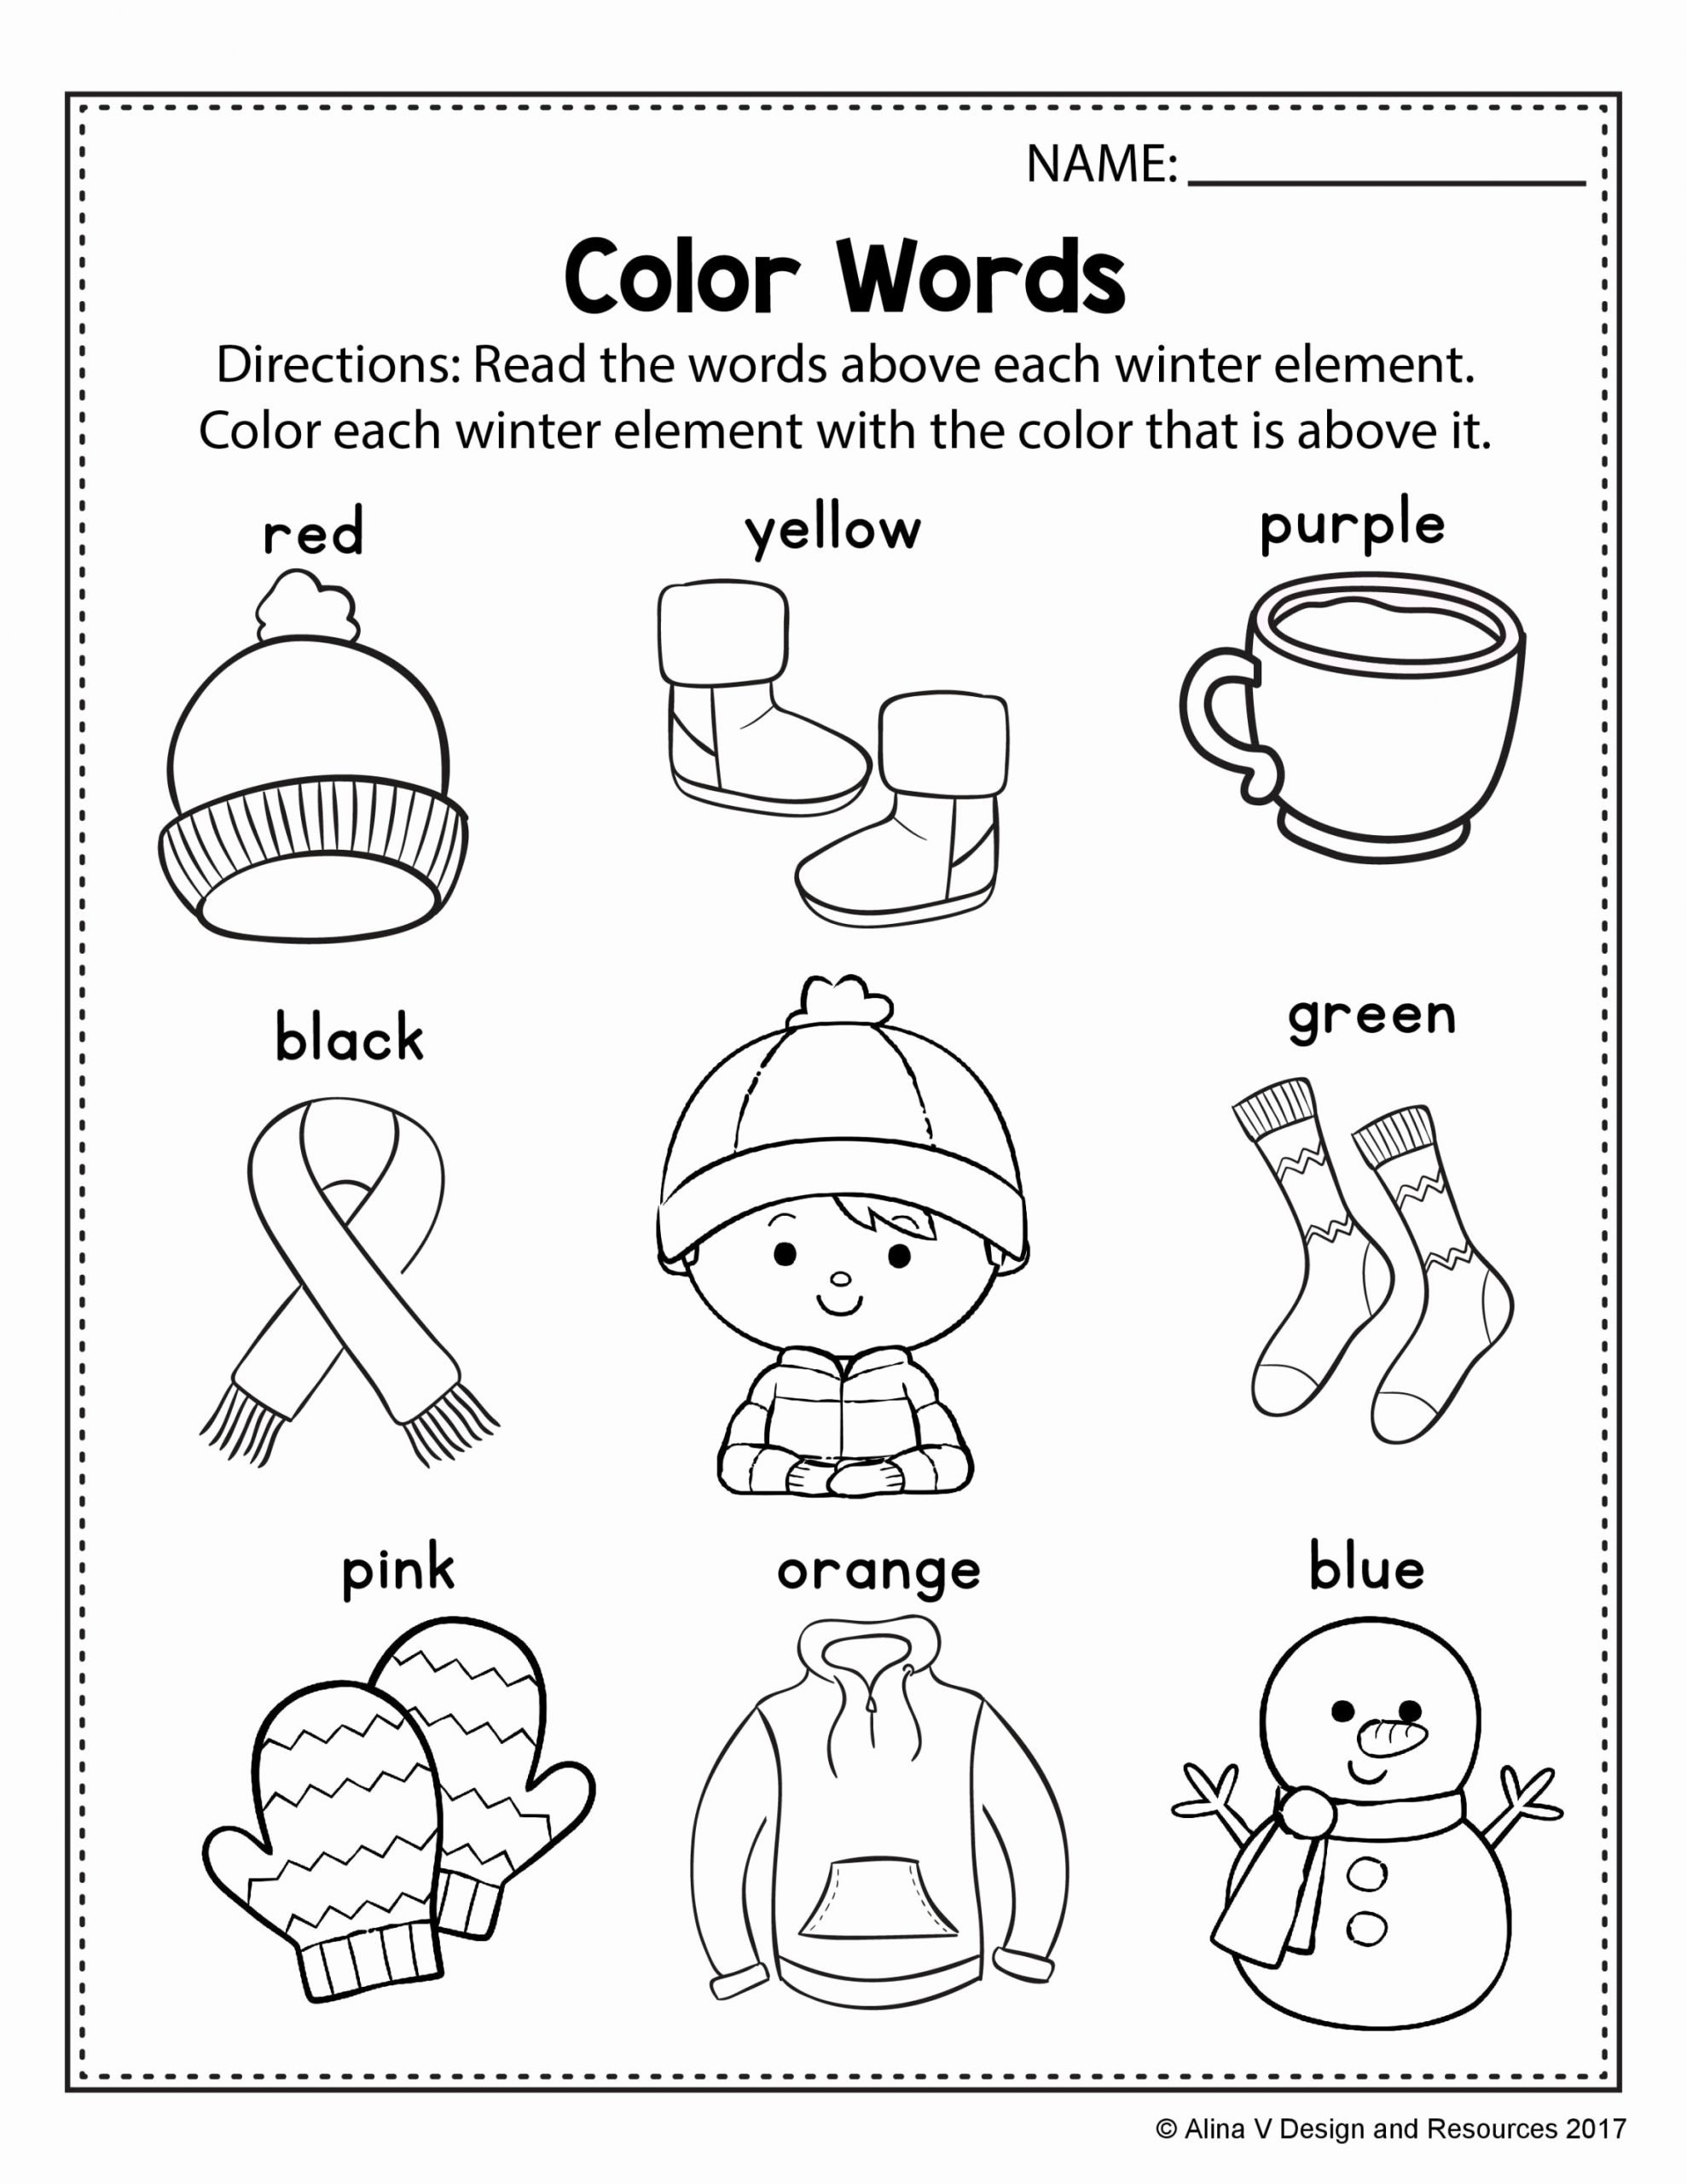 Printable Winter Worksheets for Preschoolers Inspirational Alinavdesign